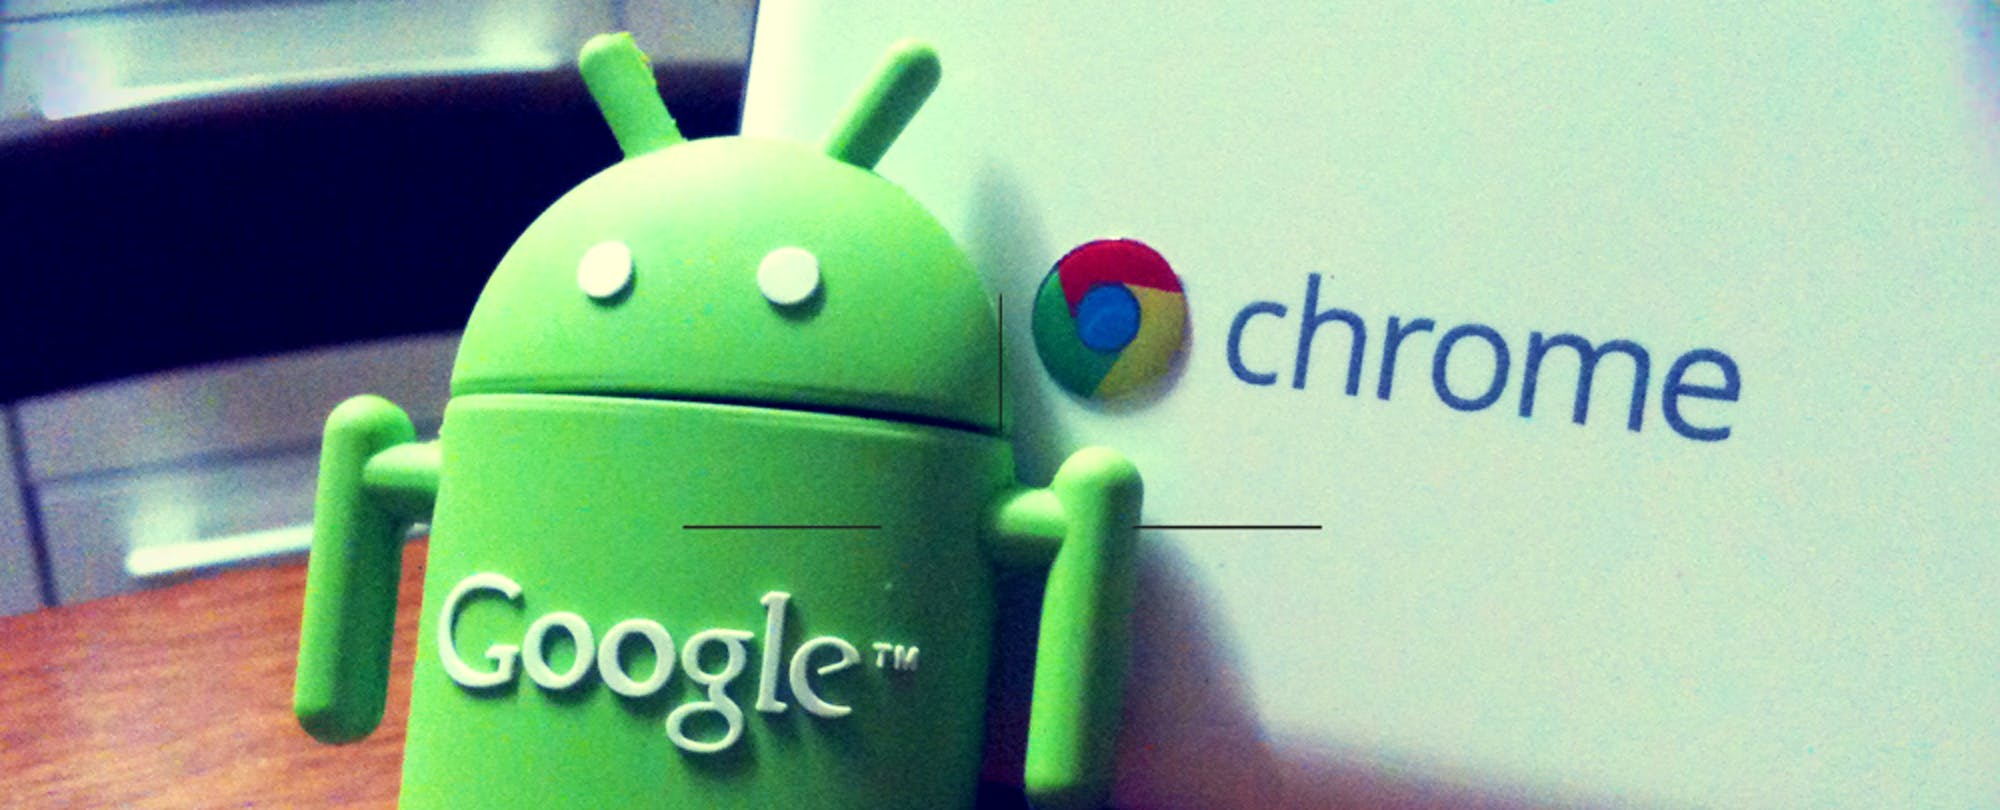 Google Reigns US K-12 Devices with 713K Chromebooks Shipped in Q3